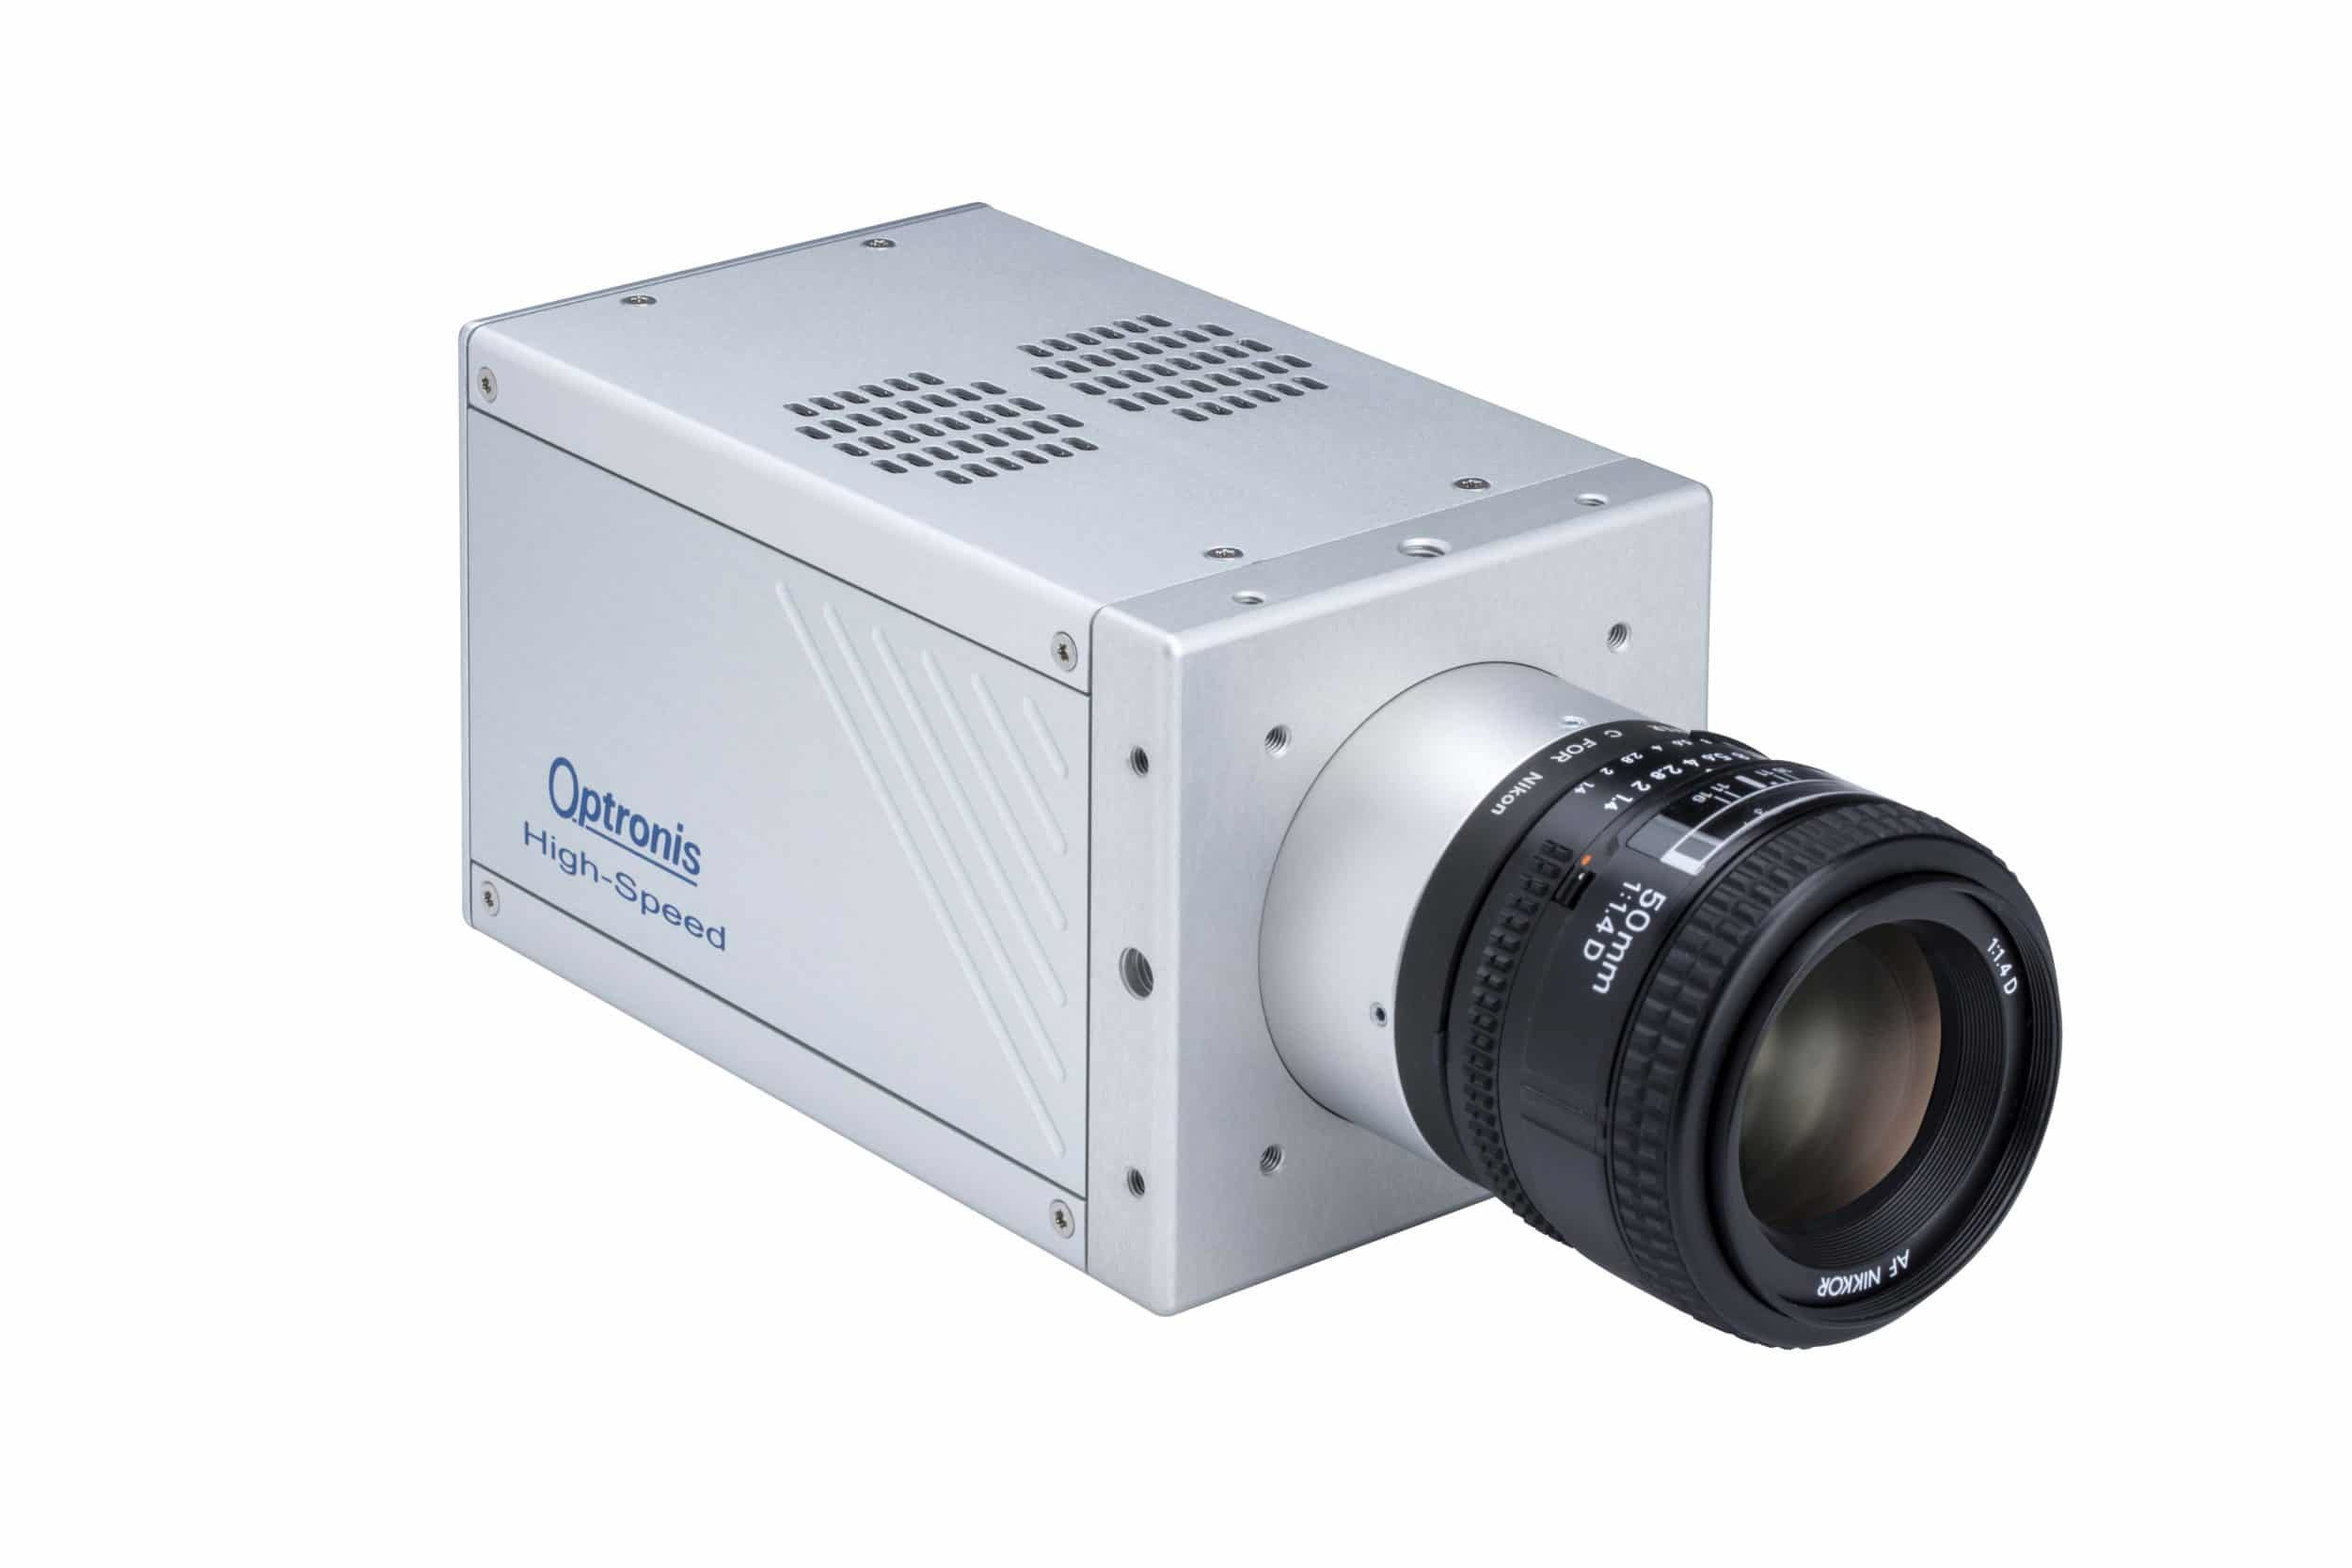 optronis-camrecord-camera-slow-motion-industry-cr-s3500